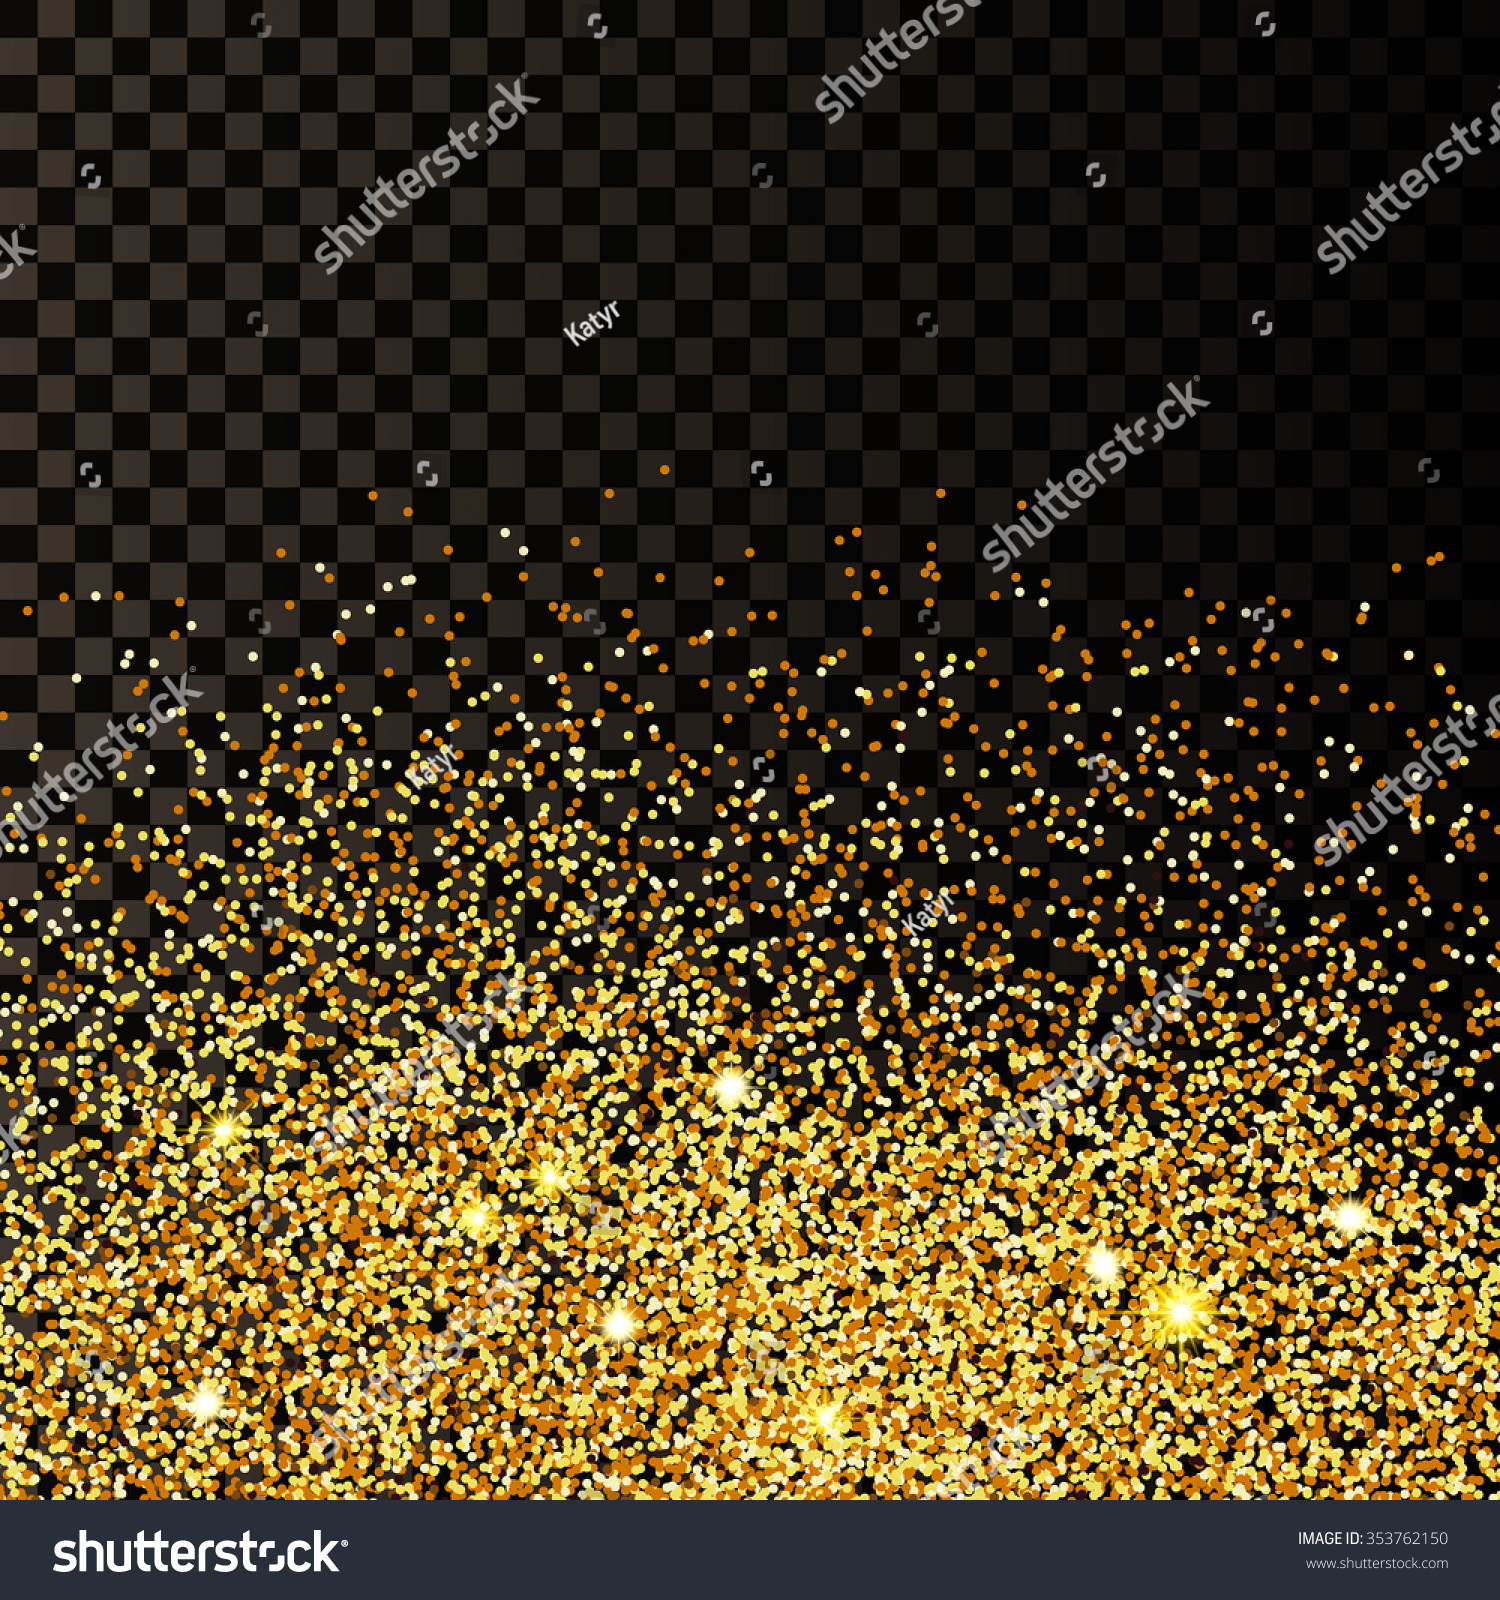 Gold glitter bright vector transparent background golden sparkles - Vector Illustration Of Golden Confetti Background For Design Website Background Banner Gold